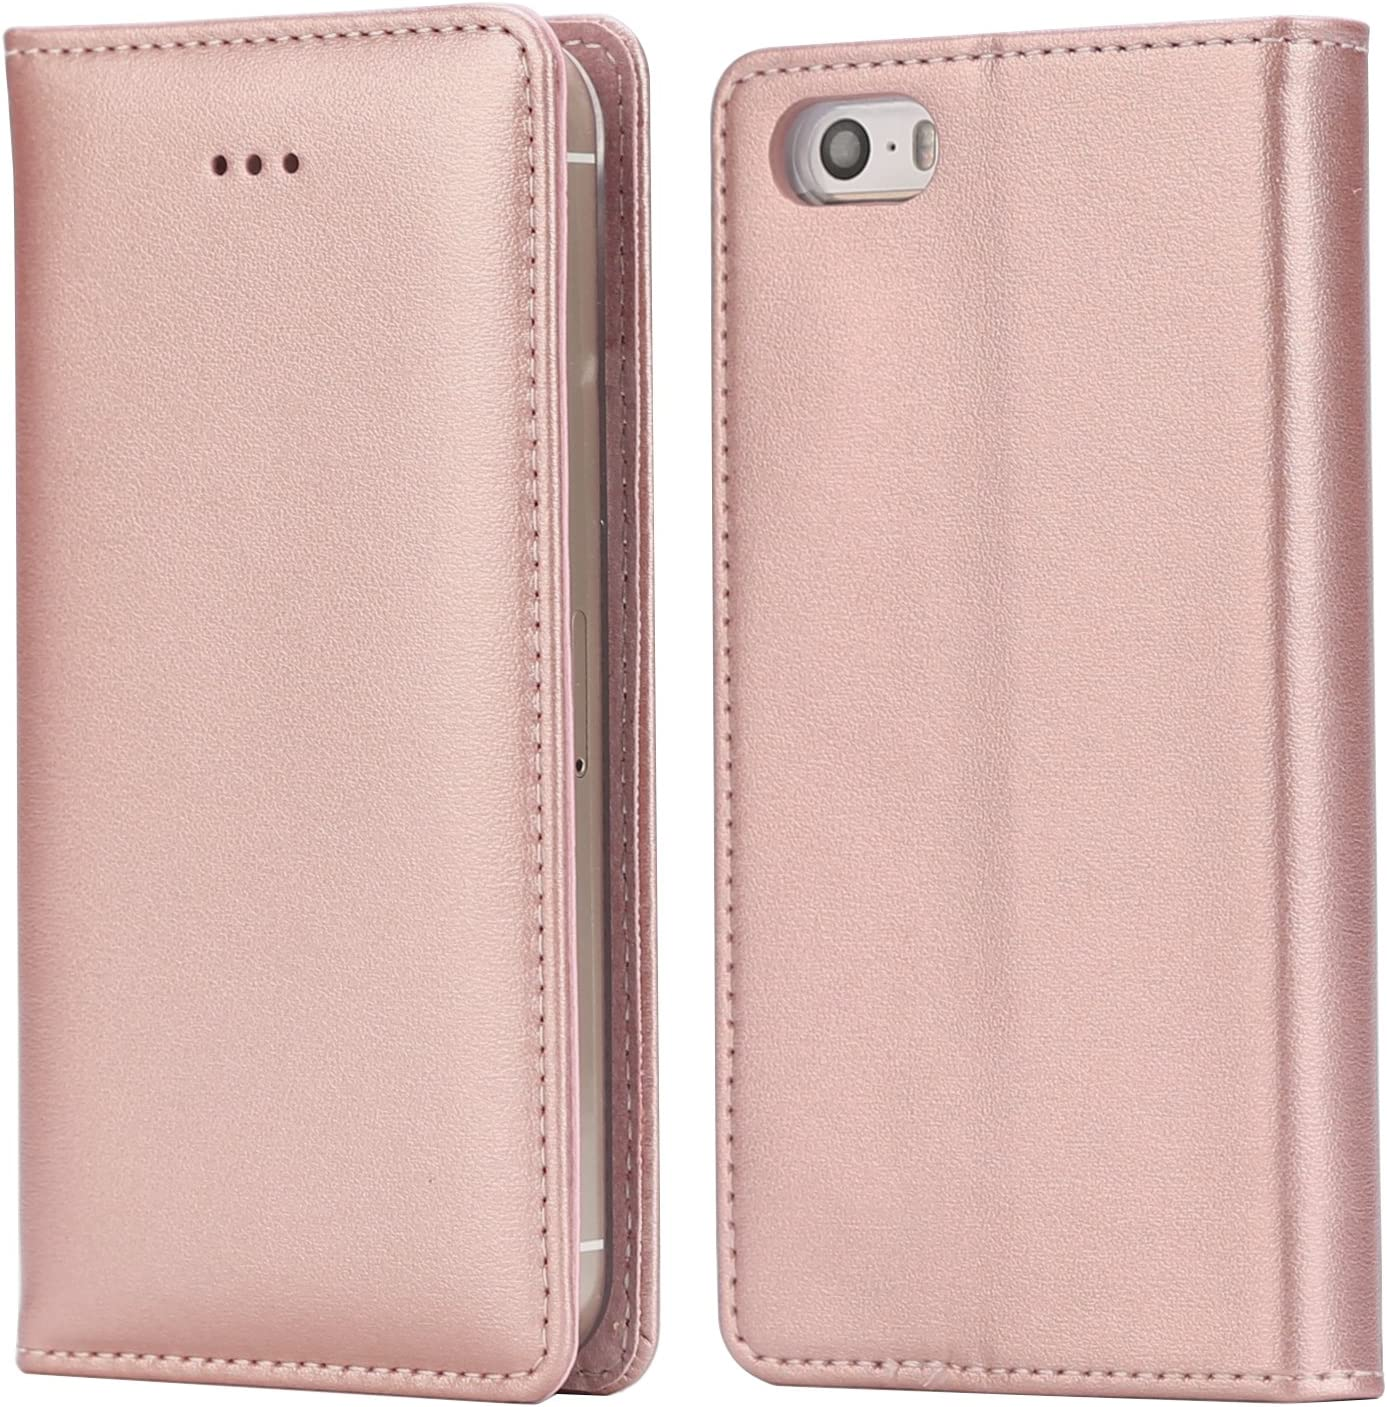 iPhox Case Compatible with iPhone SE 2016 (Not for 2020) / iPhone 5S / iPhone 5, Premium Folio Leather Flip Wallet Phone Case Cover for Apple iPhone SE 2016 / iPhone 5S / iPhone 5, Rose Gold/E